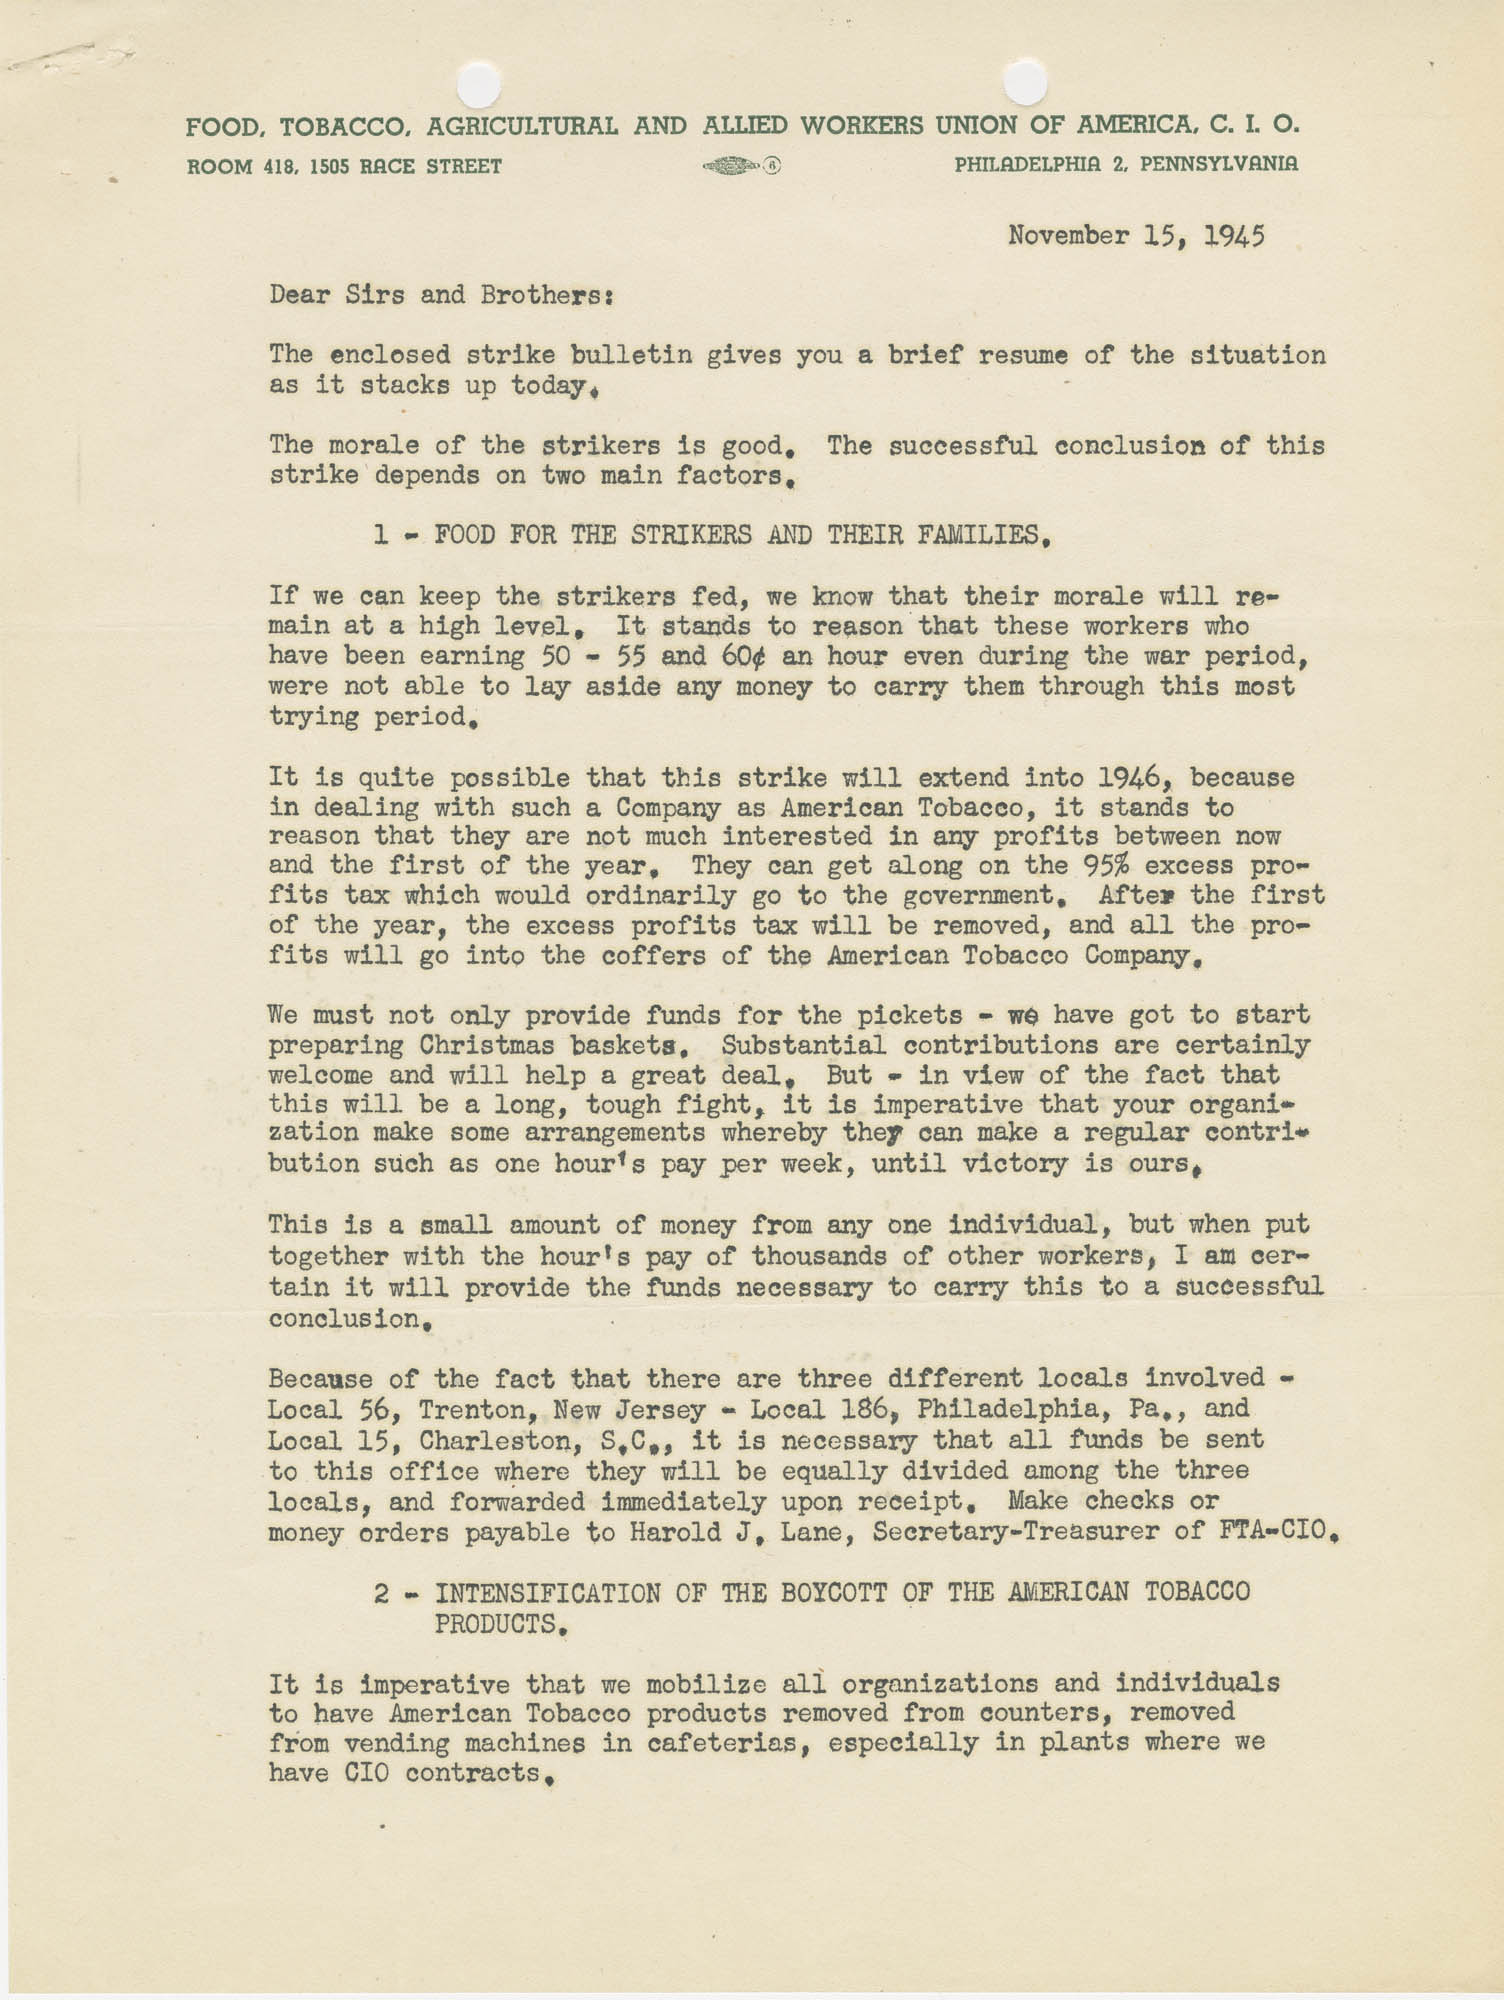 Letter from Harold J. Lane indicating needed activities in strike  against the American Tobacco Company